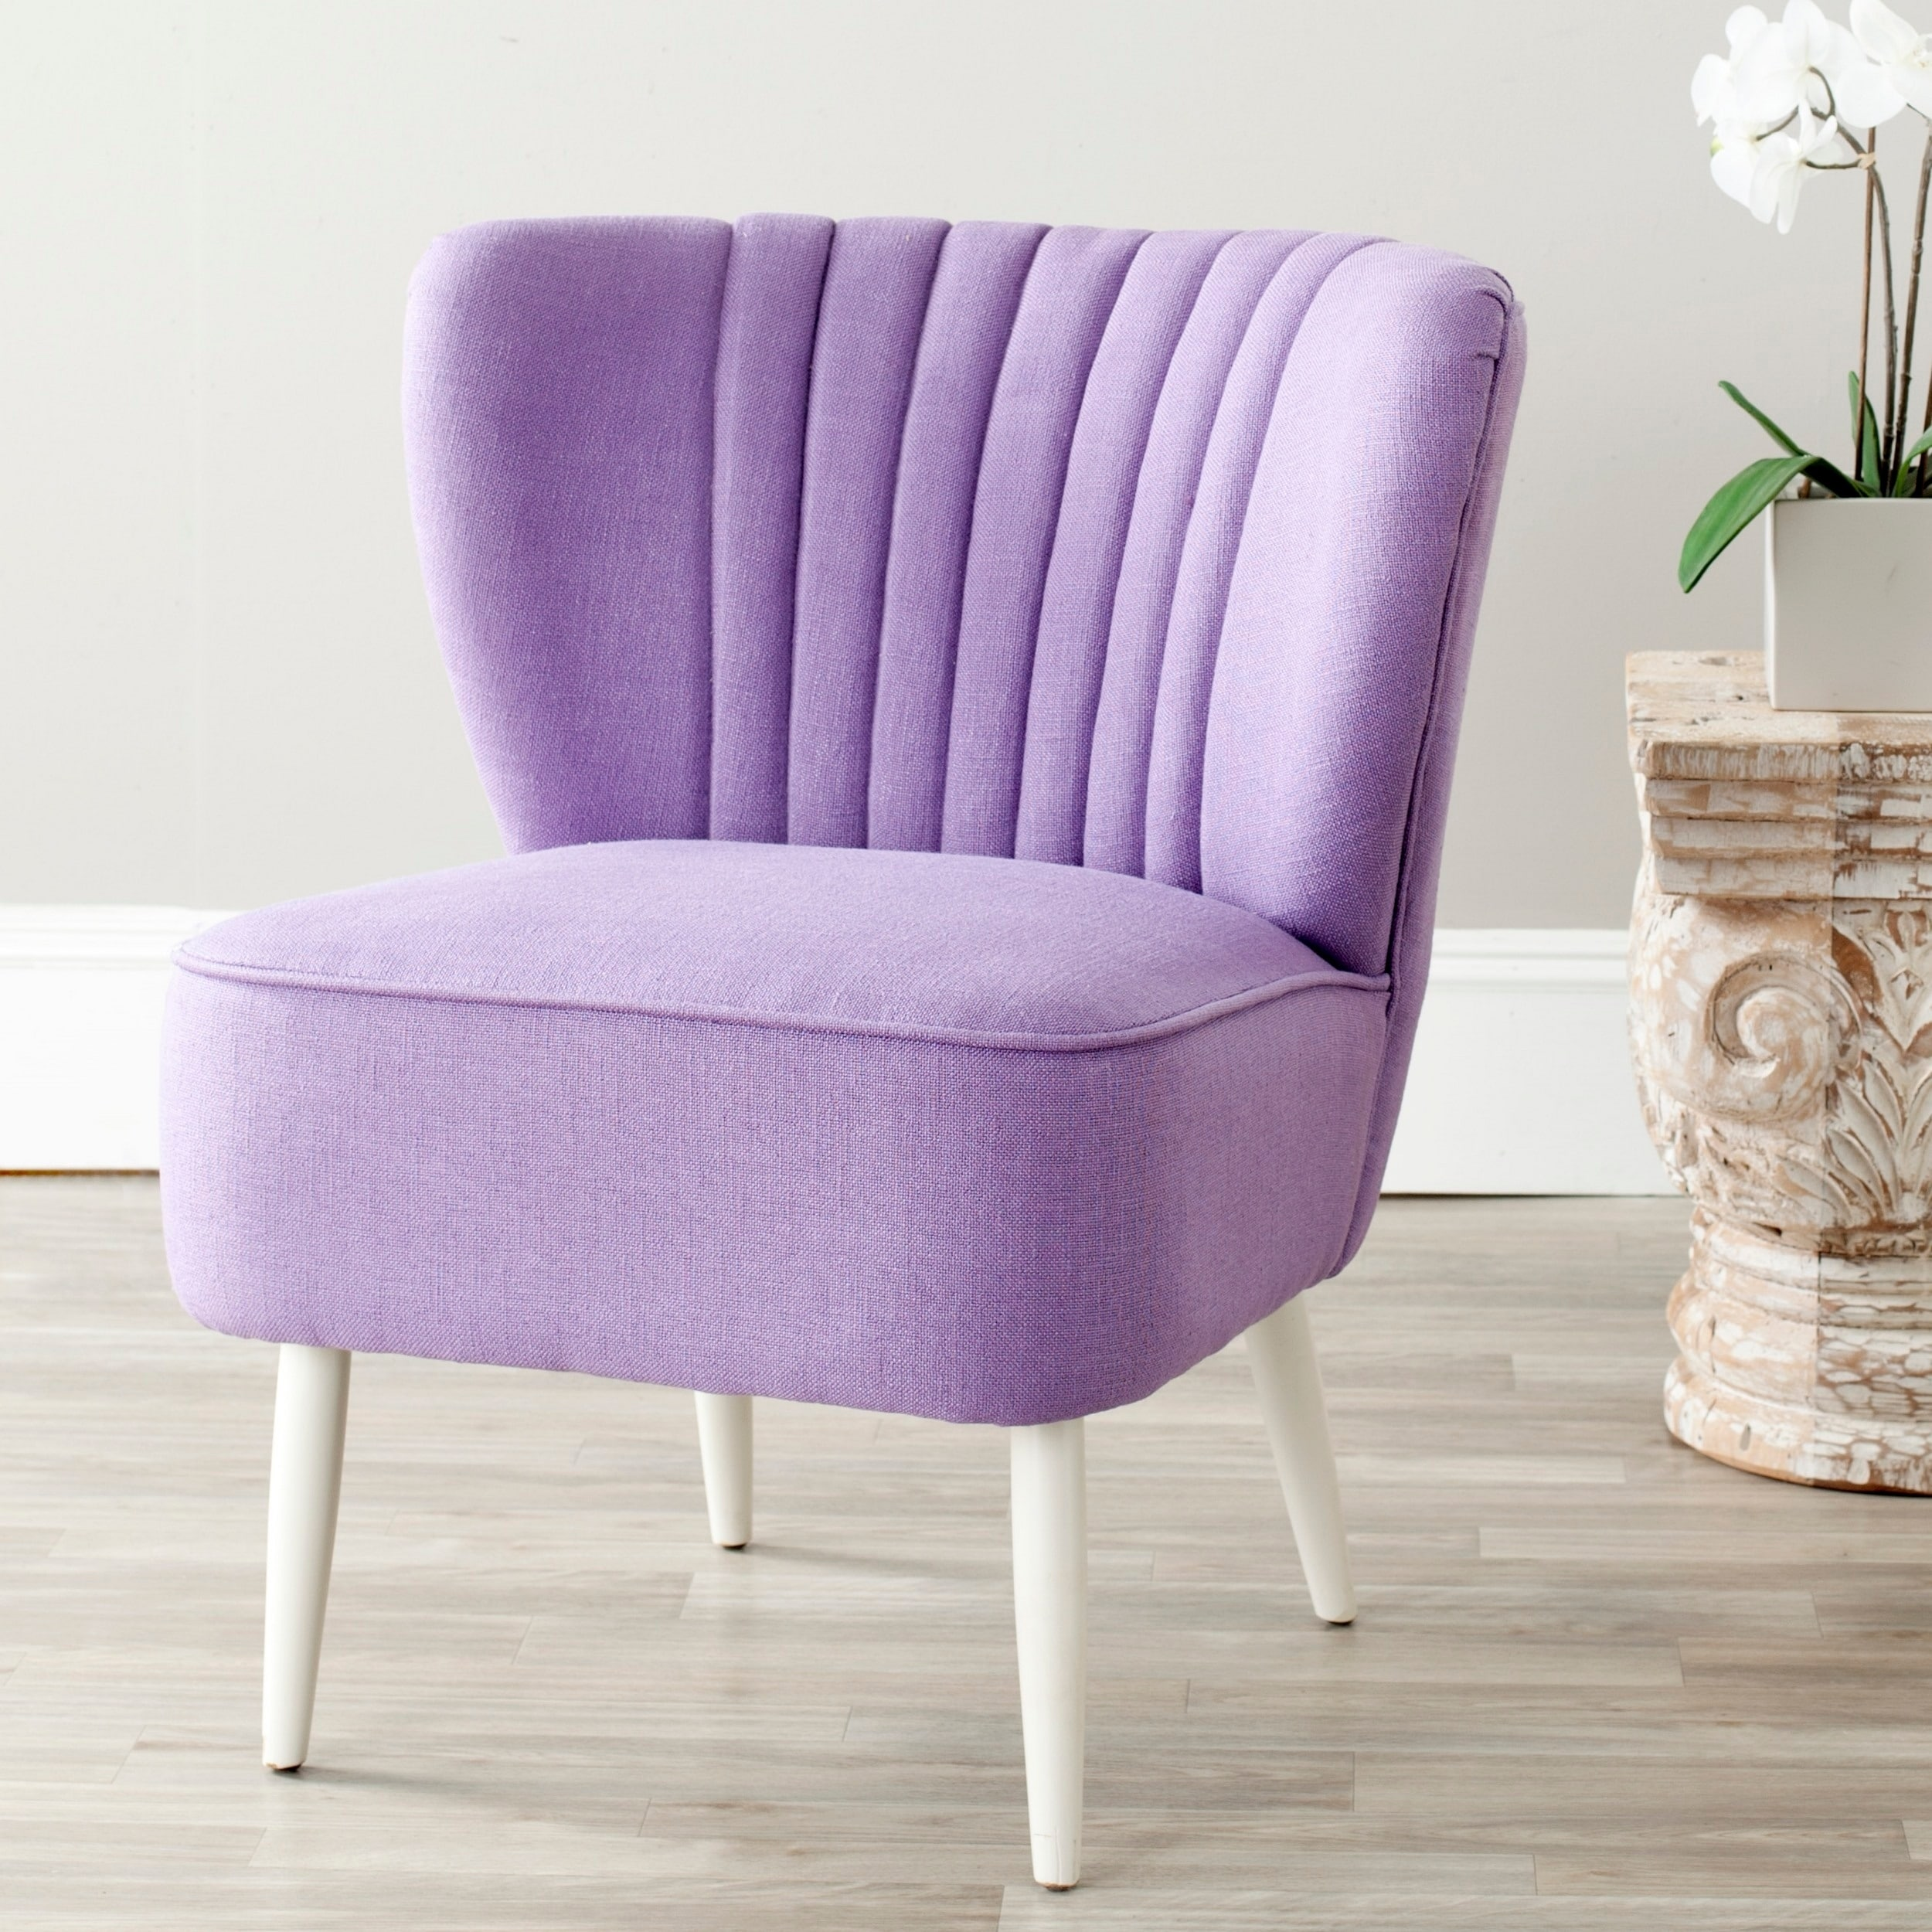 Picture of: Safavieh Mid Century Purple Accent Chair 24 4 X 28 3 X 29 9 Overstock 6387522